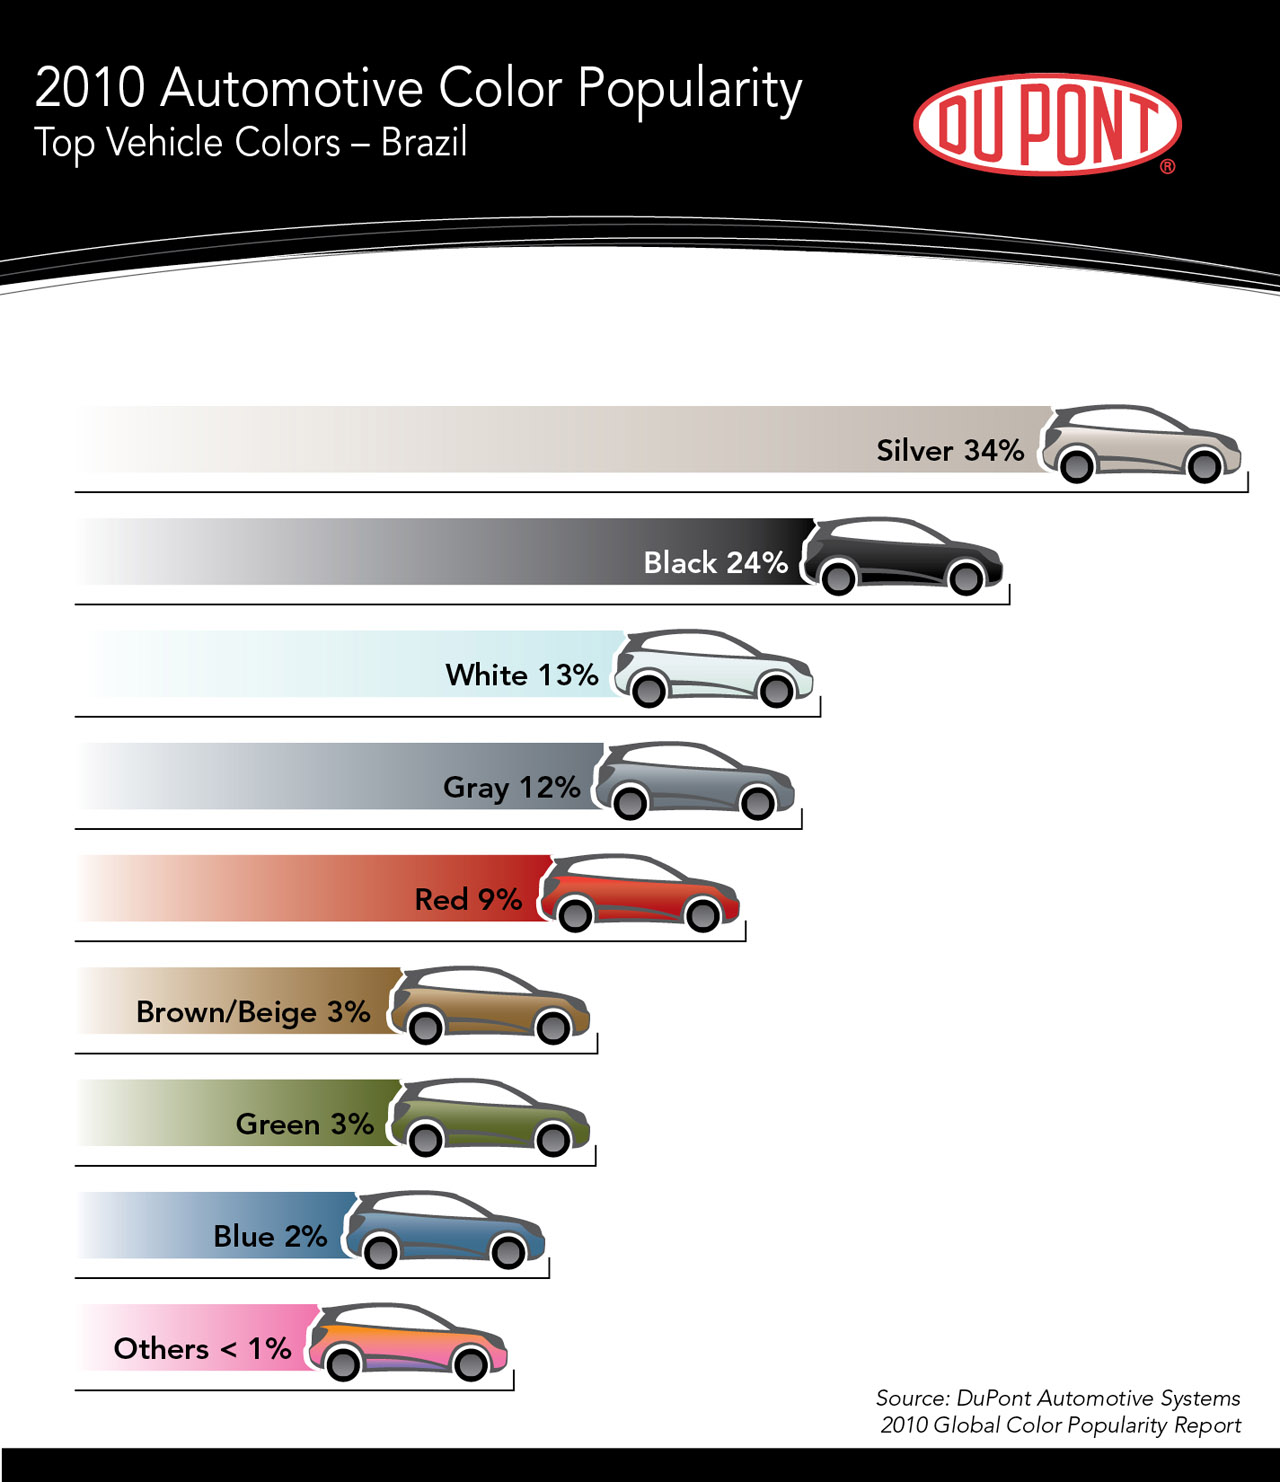 Black Threatens Silver As World's Most Popular Car Color